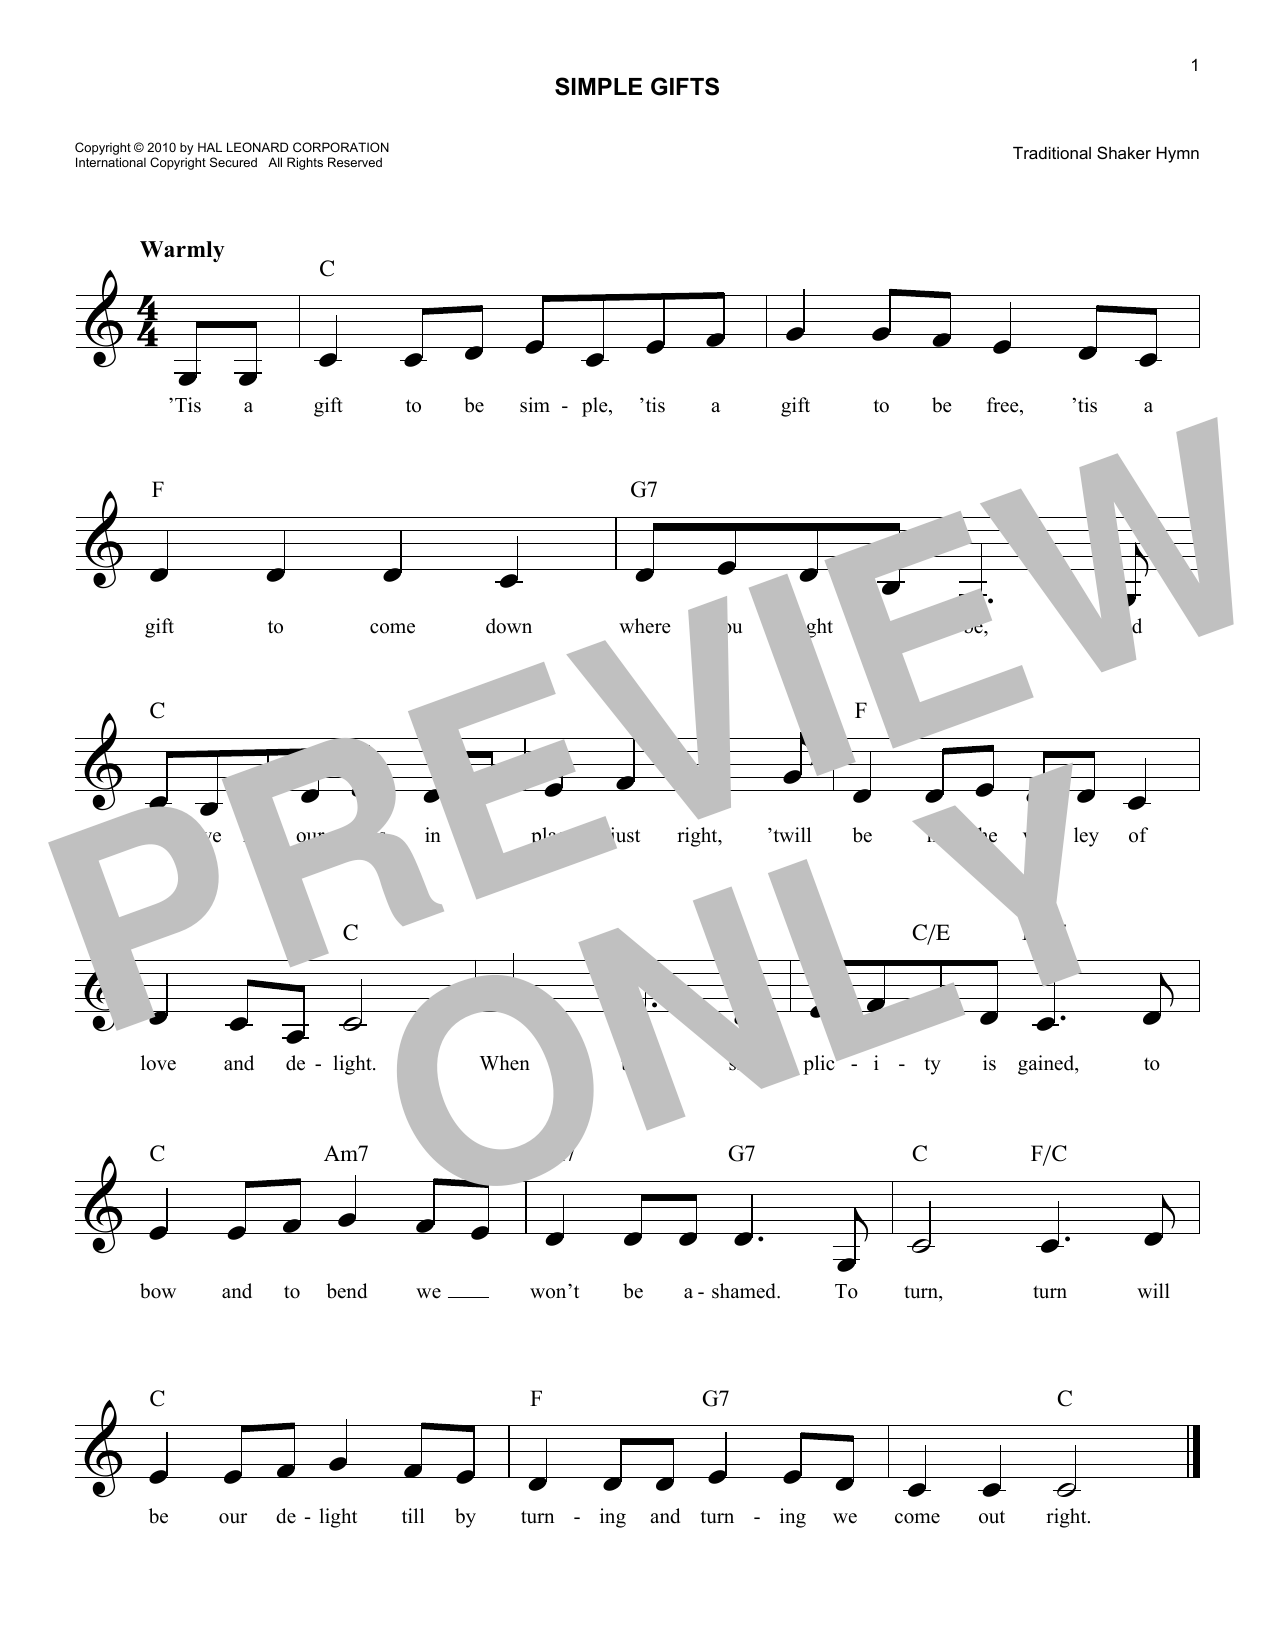 Simple gifts chords by traditional shaker hymn melody line simple gifts sheet music hexwebz Image collections